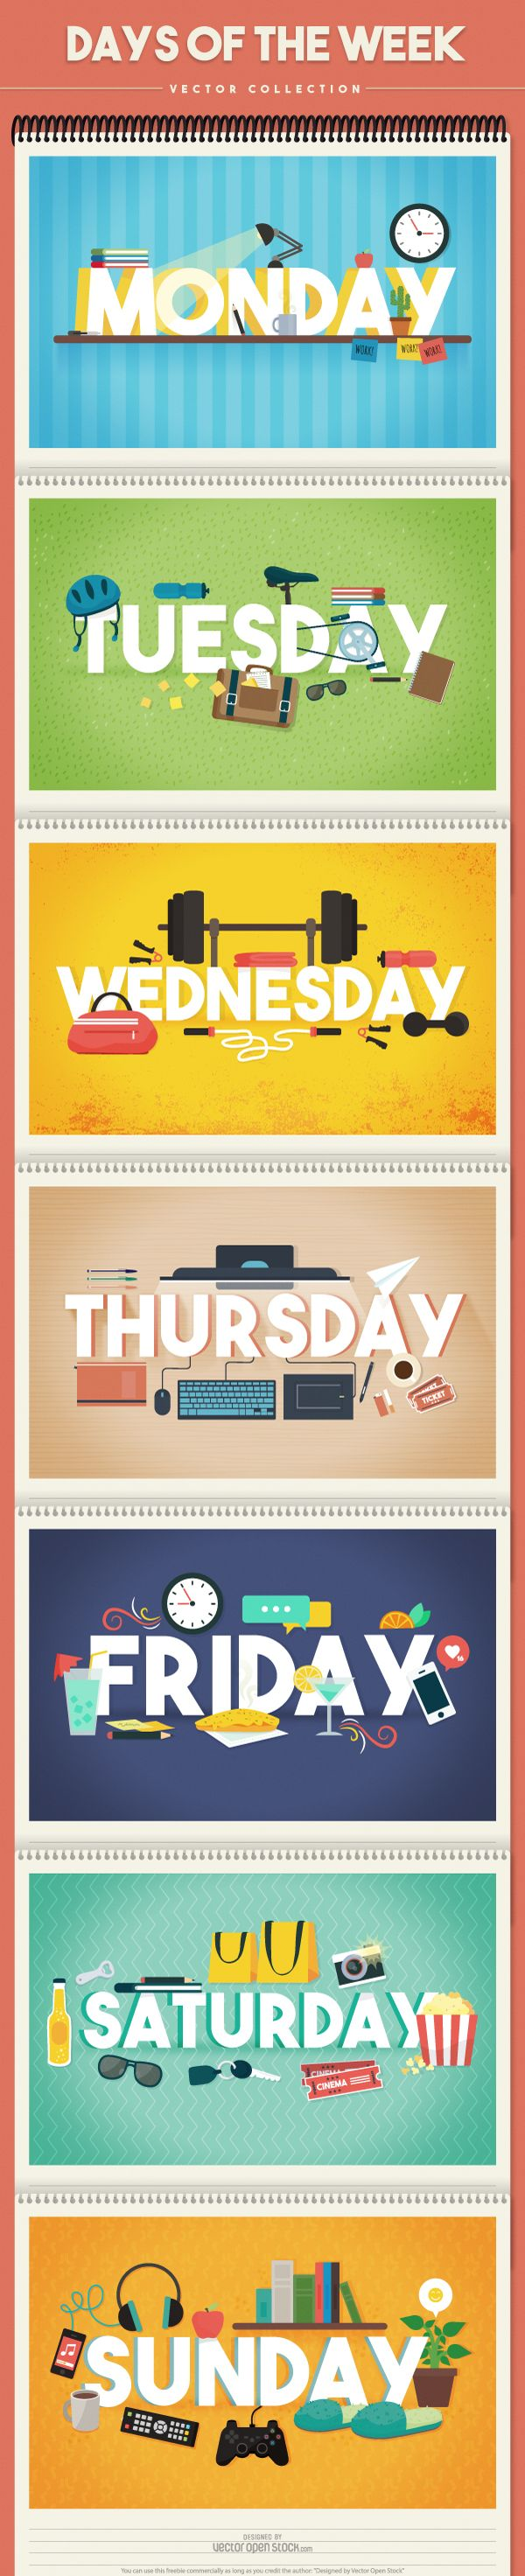 #daysoftheweek #days #week #Monday #Tuesday #Wednesday #Thursday #Friday #Saturday #Sunday #activities #features #cartoon #graphics #vector #images #design #graphic #image #free #collection #set